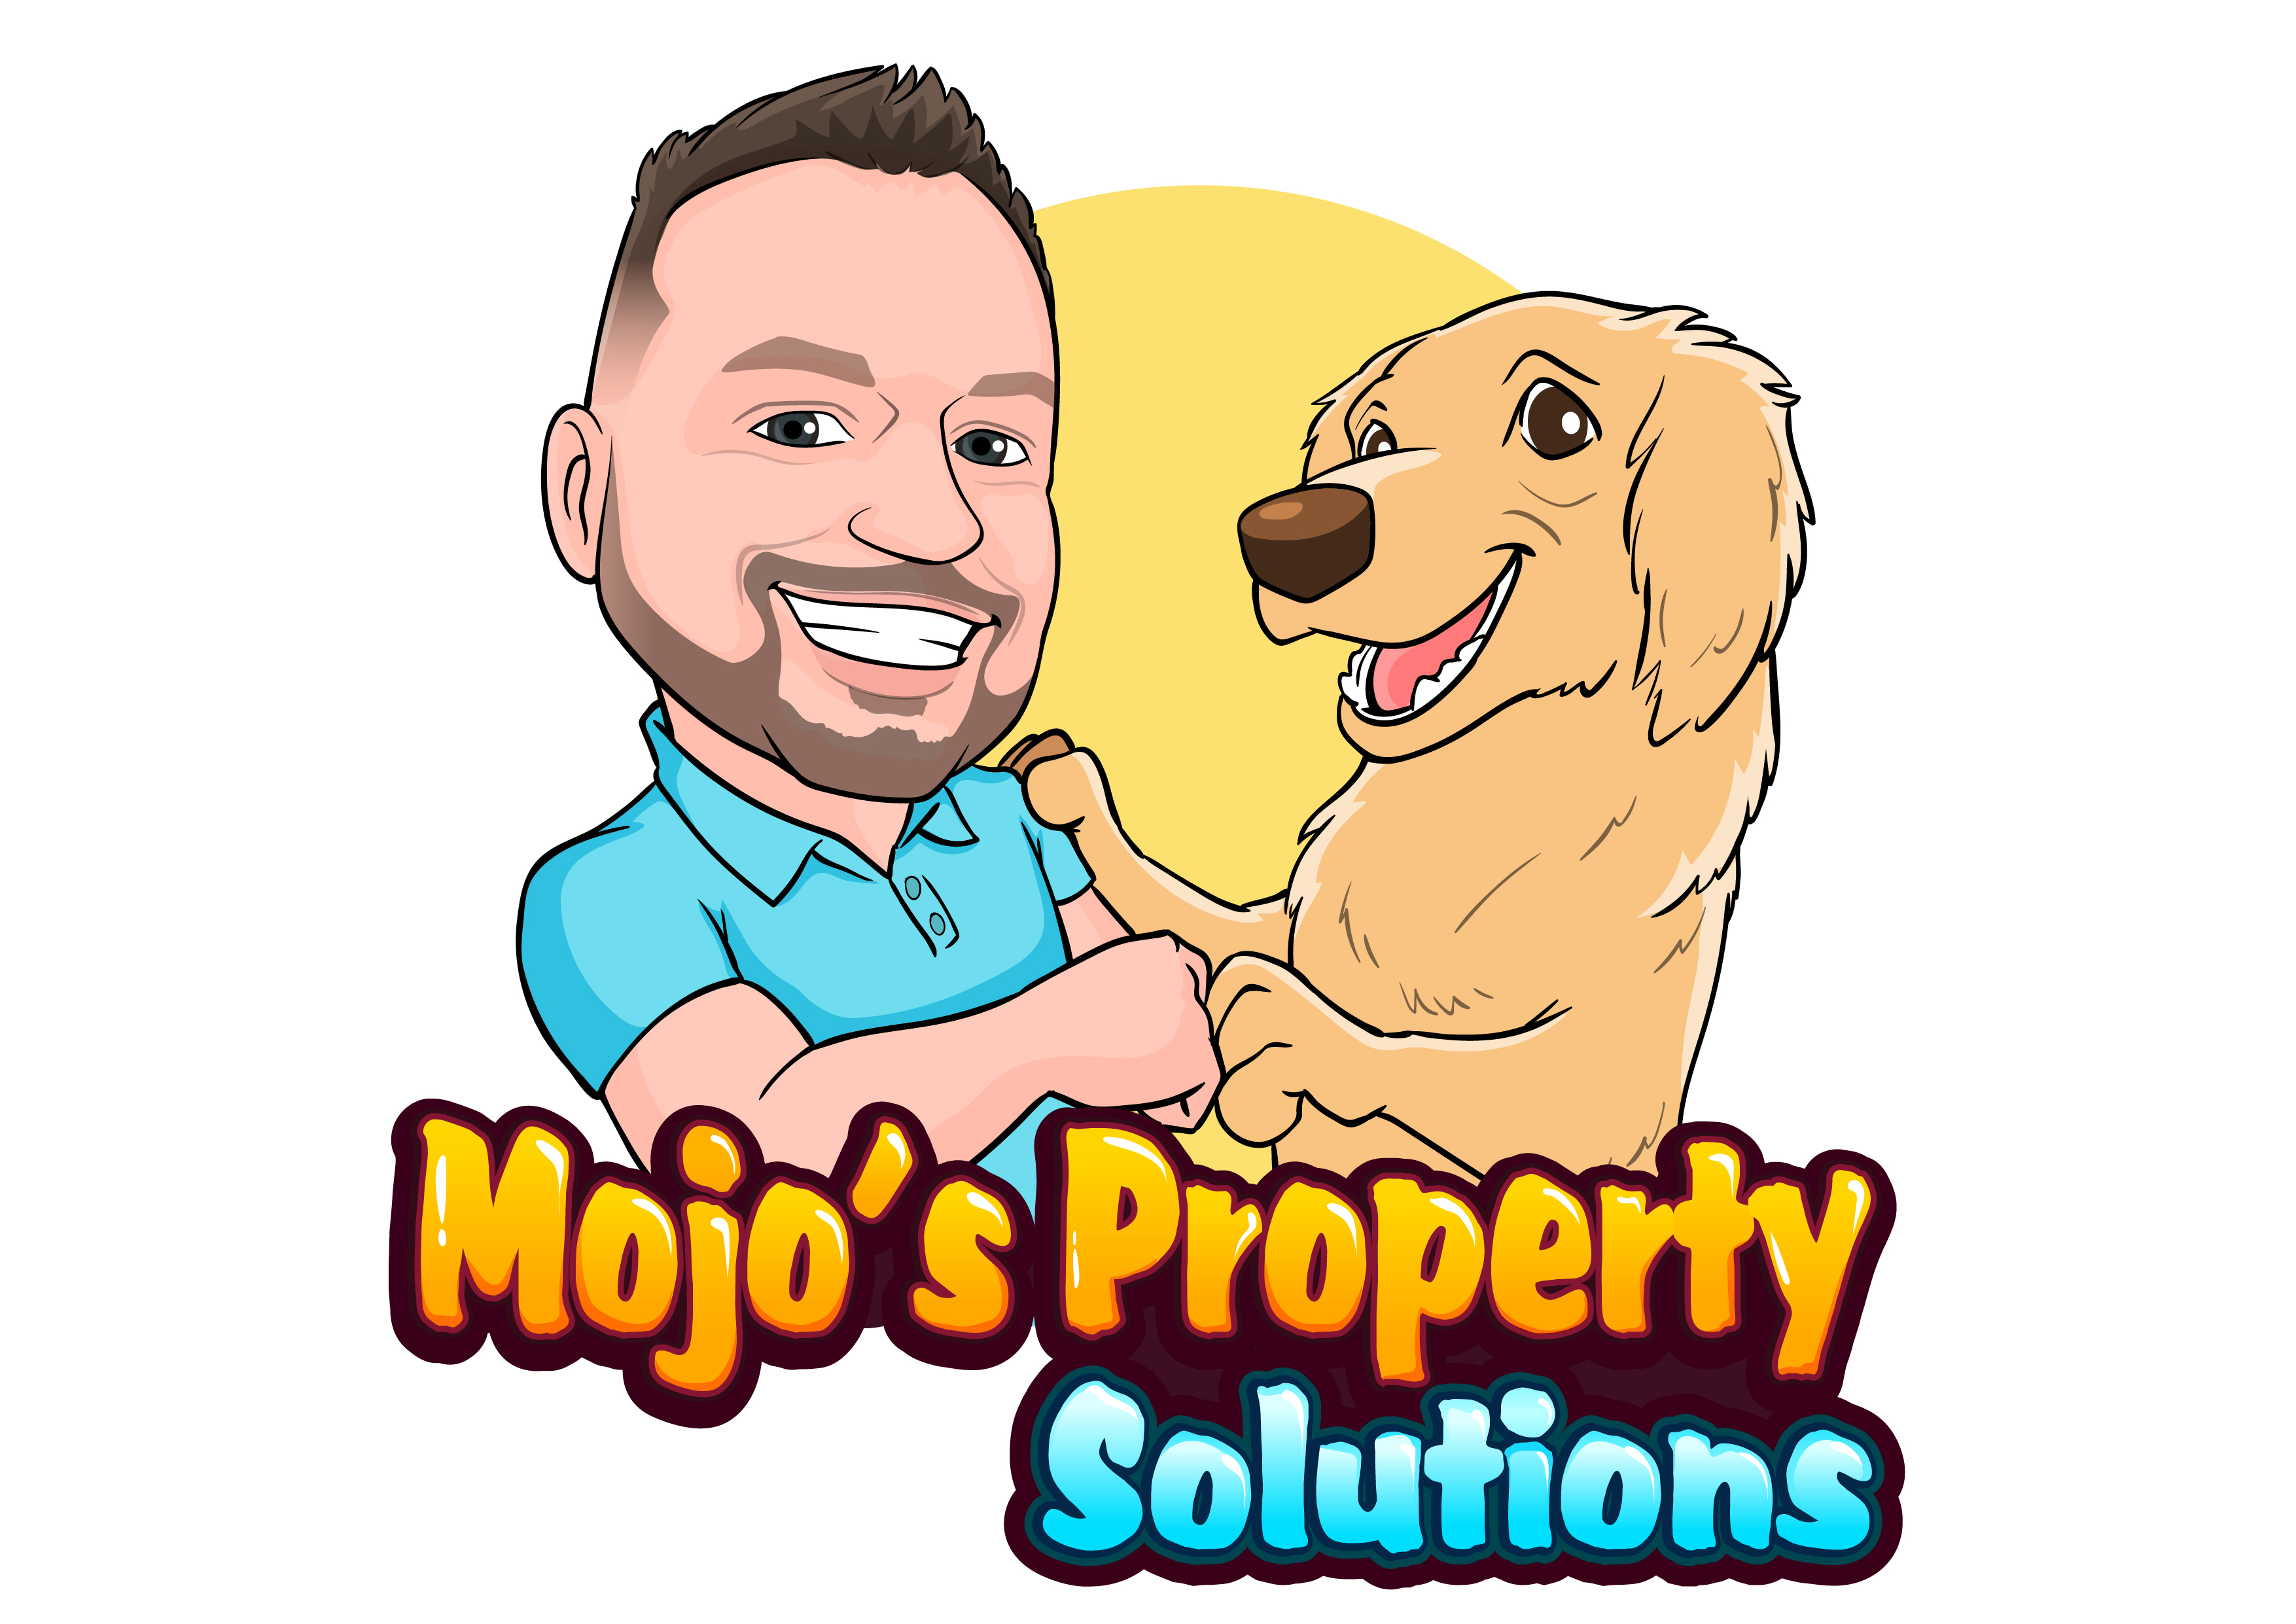 Mojo's Property Solutions